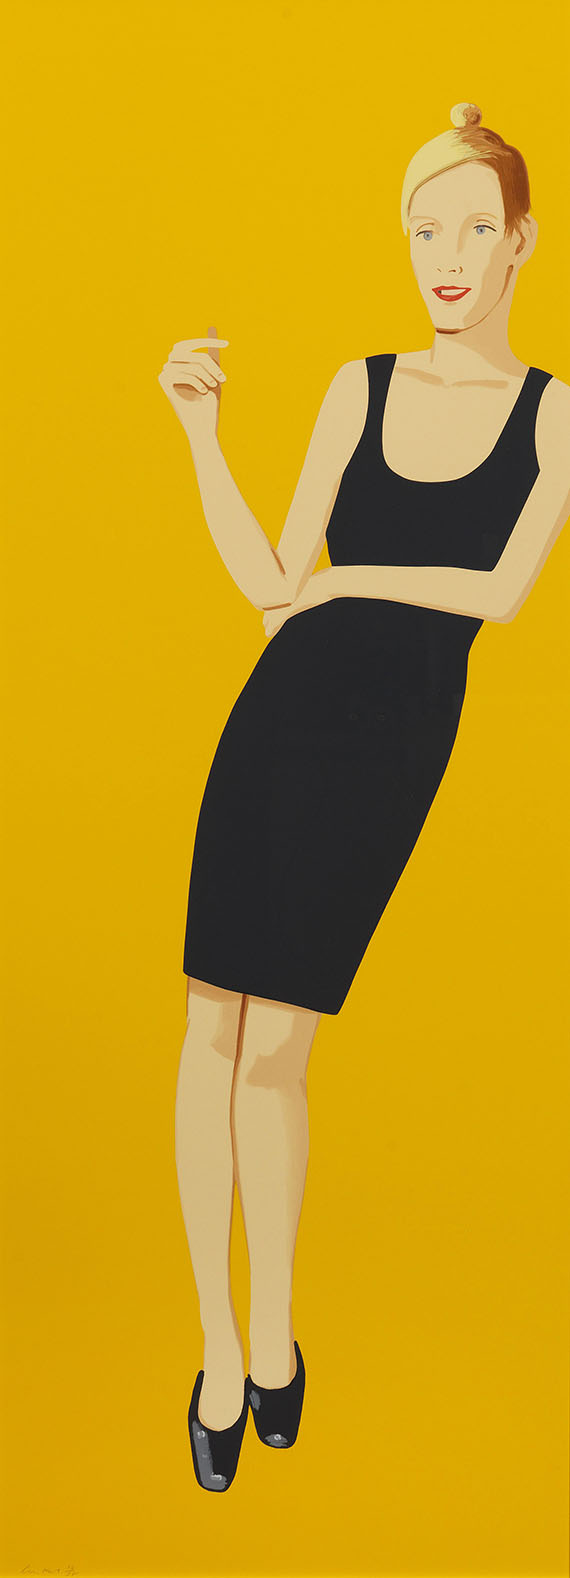 Alex Katz - Black Dress 3 (Oona)